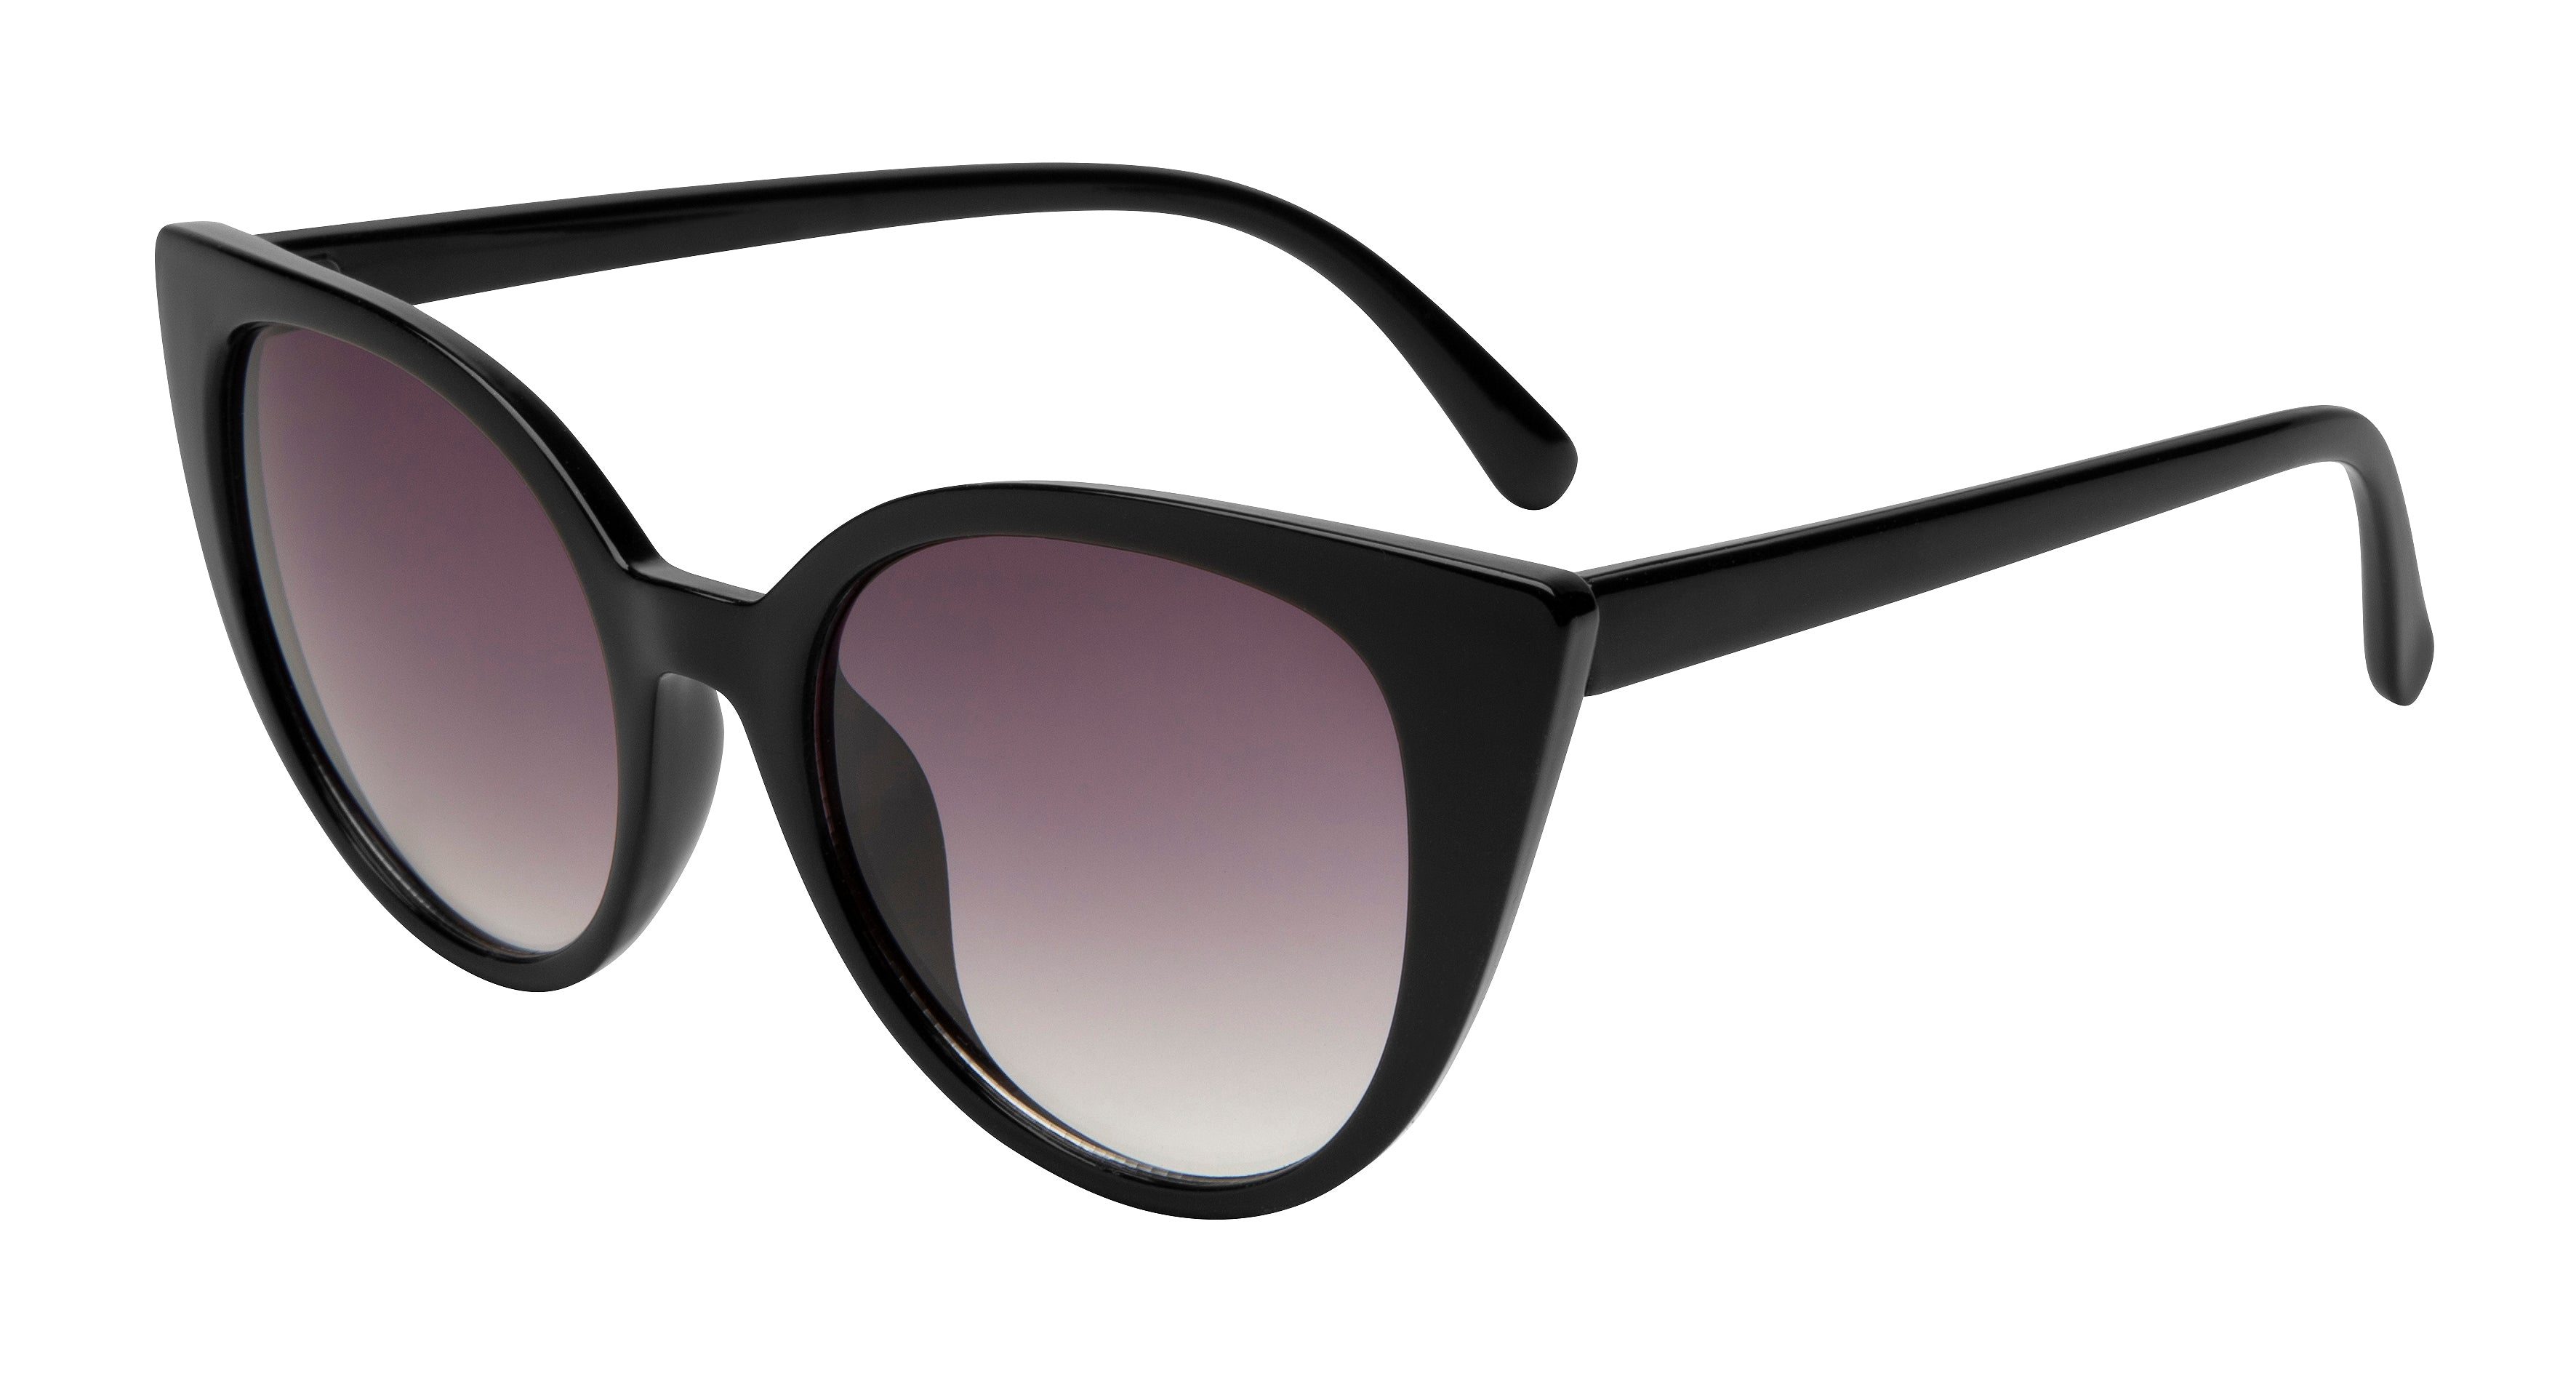 66106 - Vox Women's Plastic Fashion Sunglasses